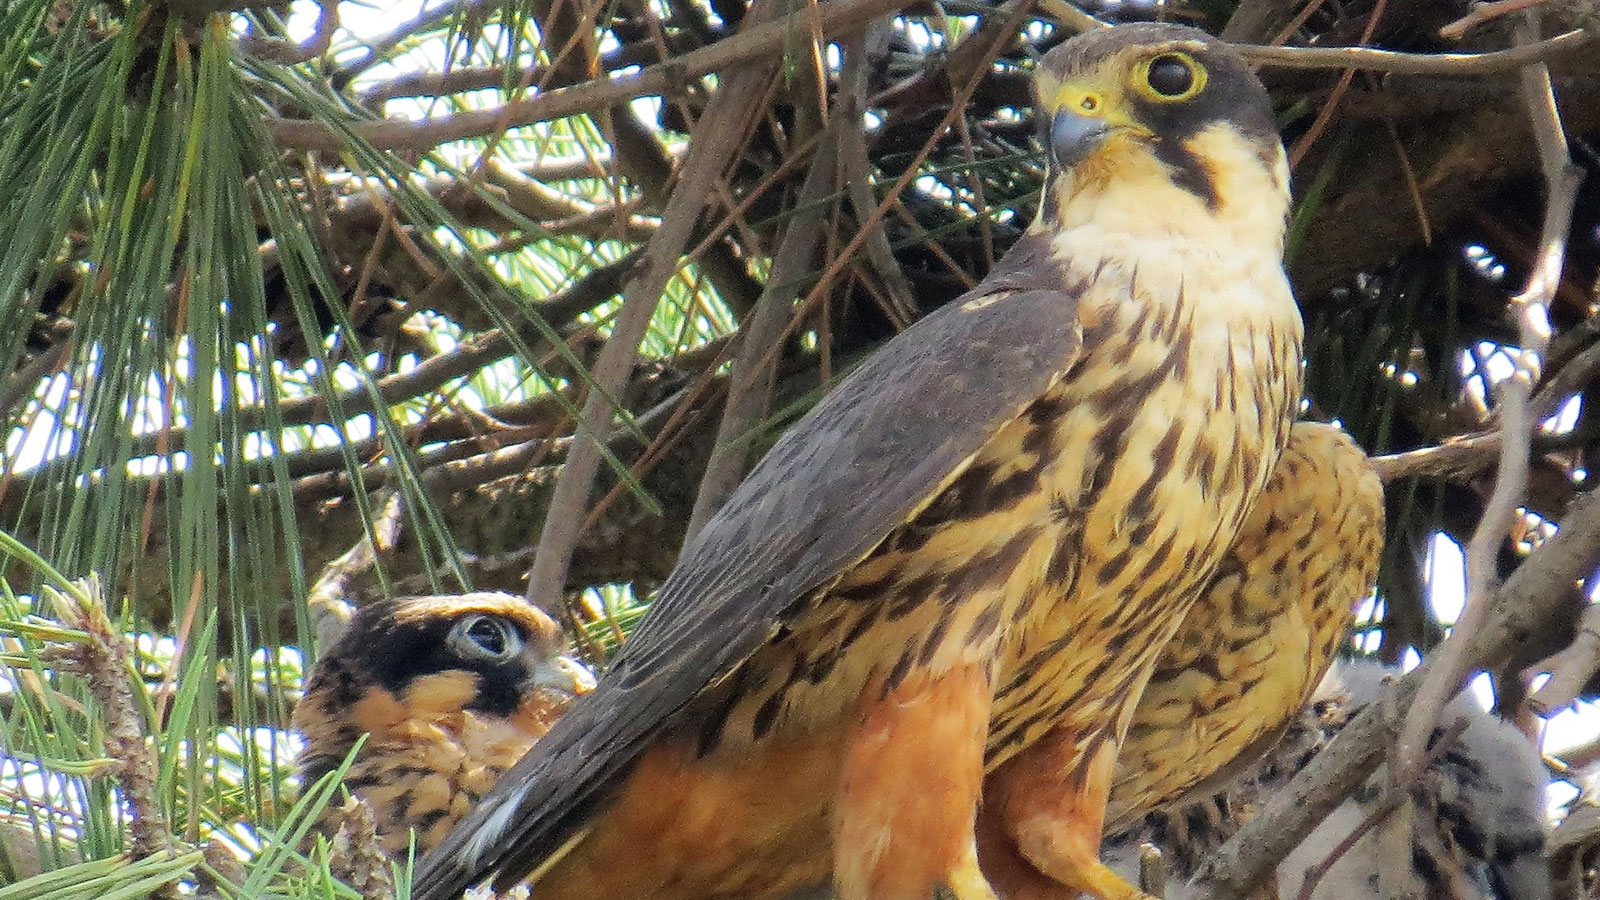 This Eurasian Hobby is one of several Korean natural monument species that Argonne's ecologists are helping to protect. (Image by Argonne National Laboratory.)